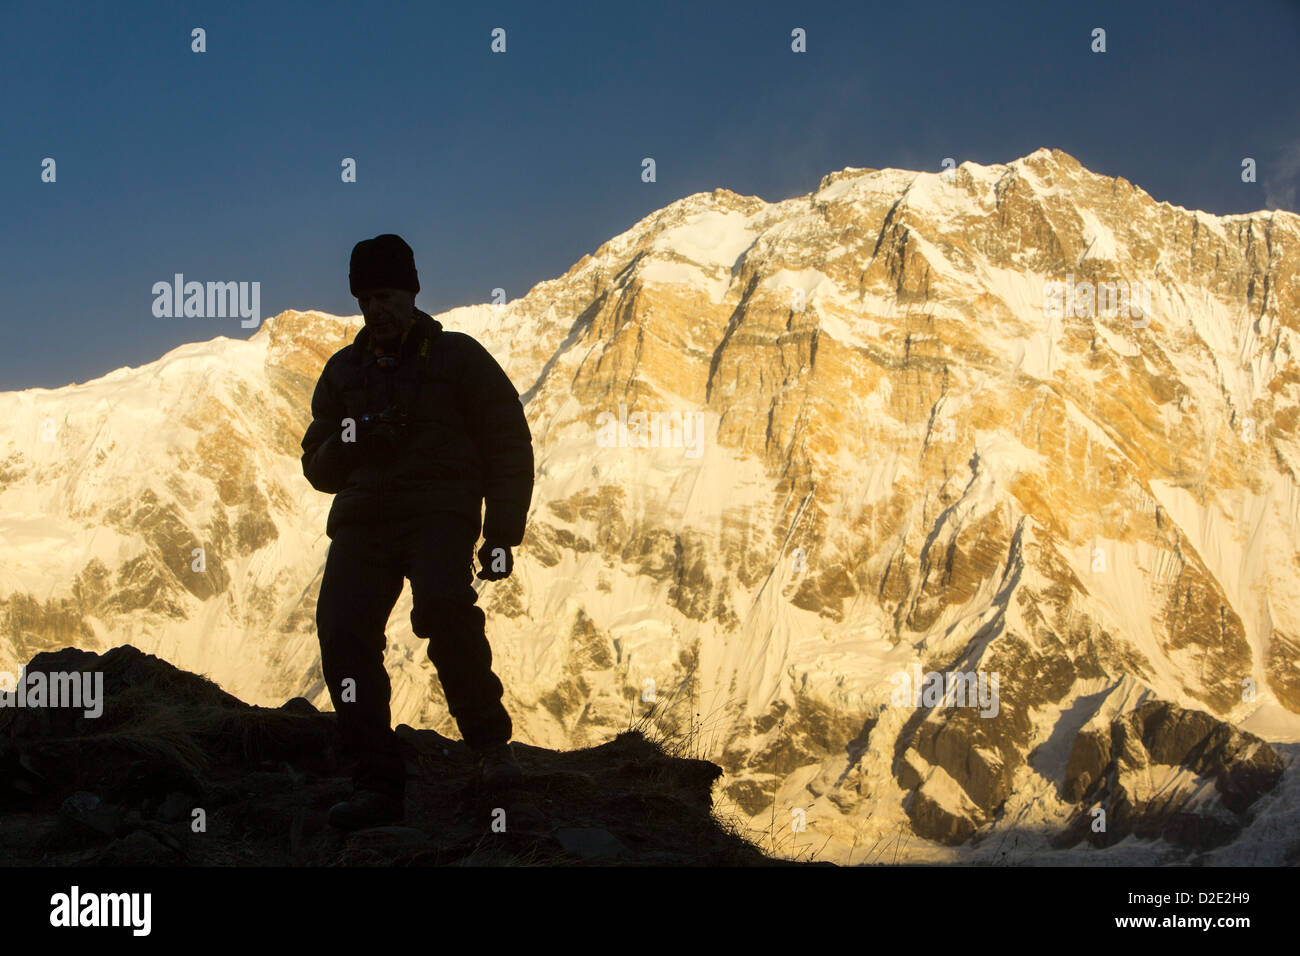 A trekker with alpenglow at sunrise on Annapurna South and Annapurna Fang, Nepelese Himalayas. - Stock Image